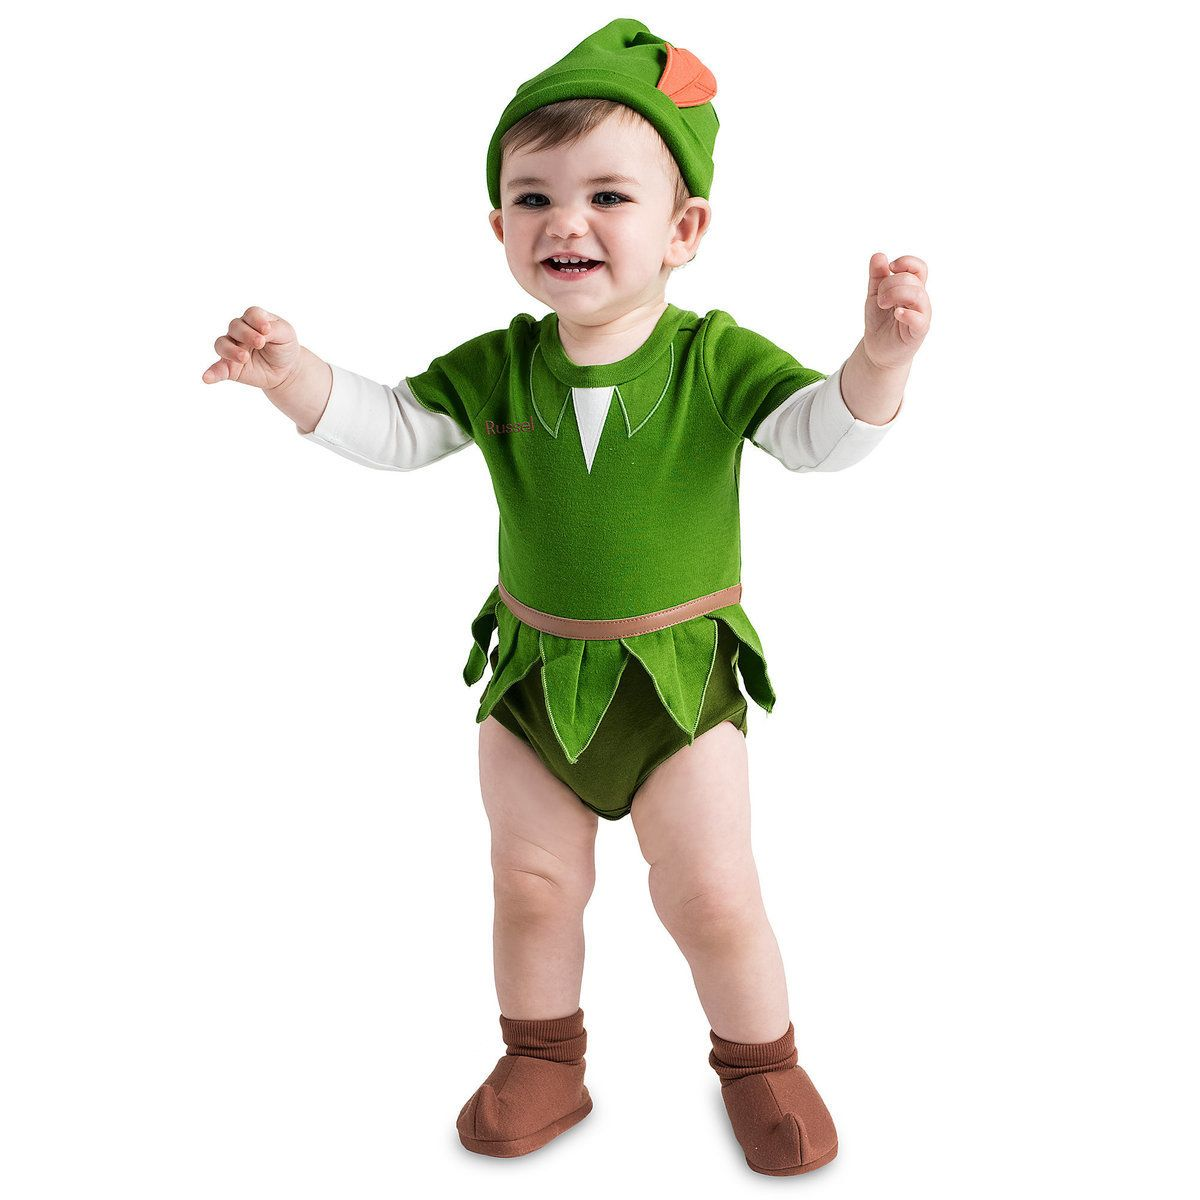 Marvelous Peter Pan Costume Bodysuit For Baby   Personalizable